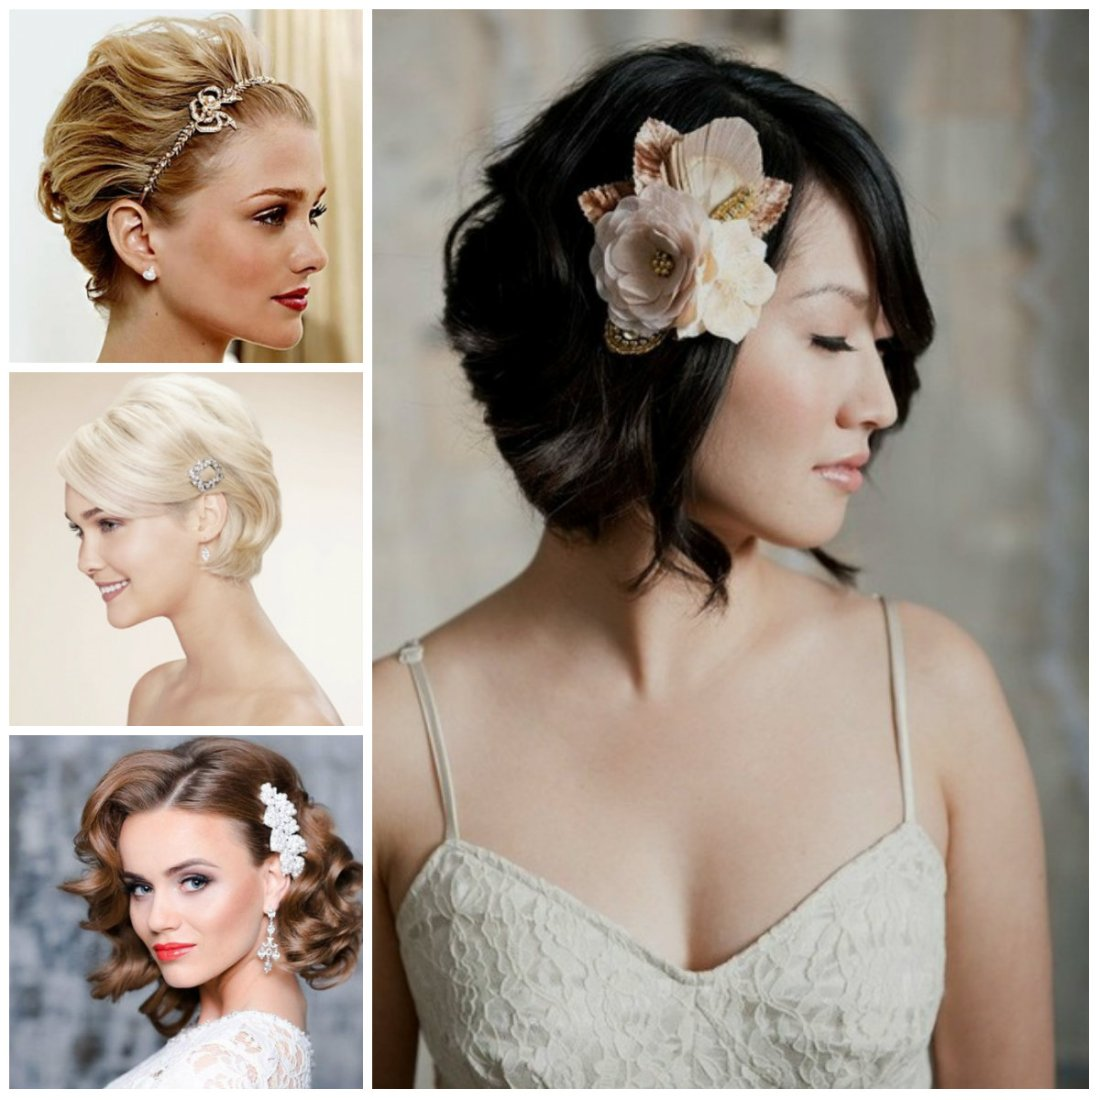 short-wedding-hairstyle-for-females-2016.jpg